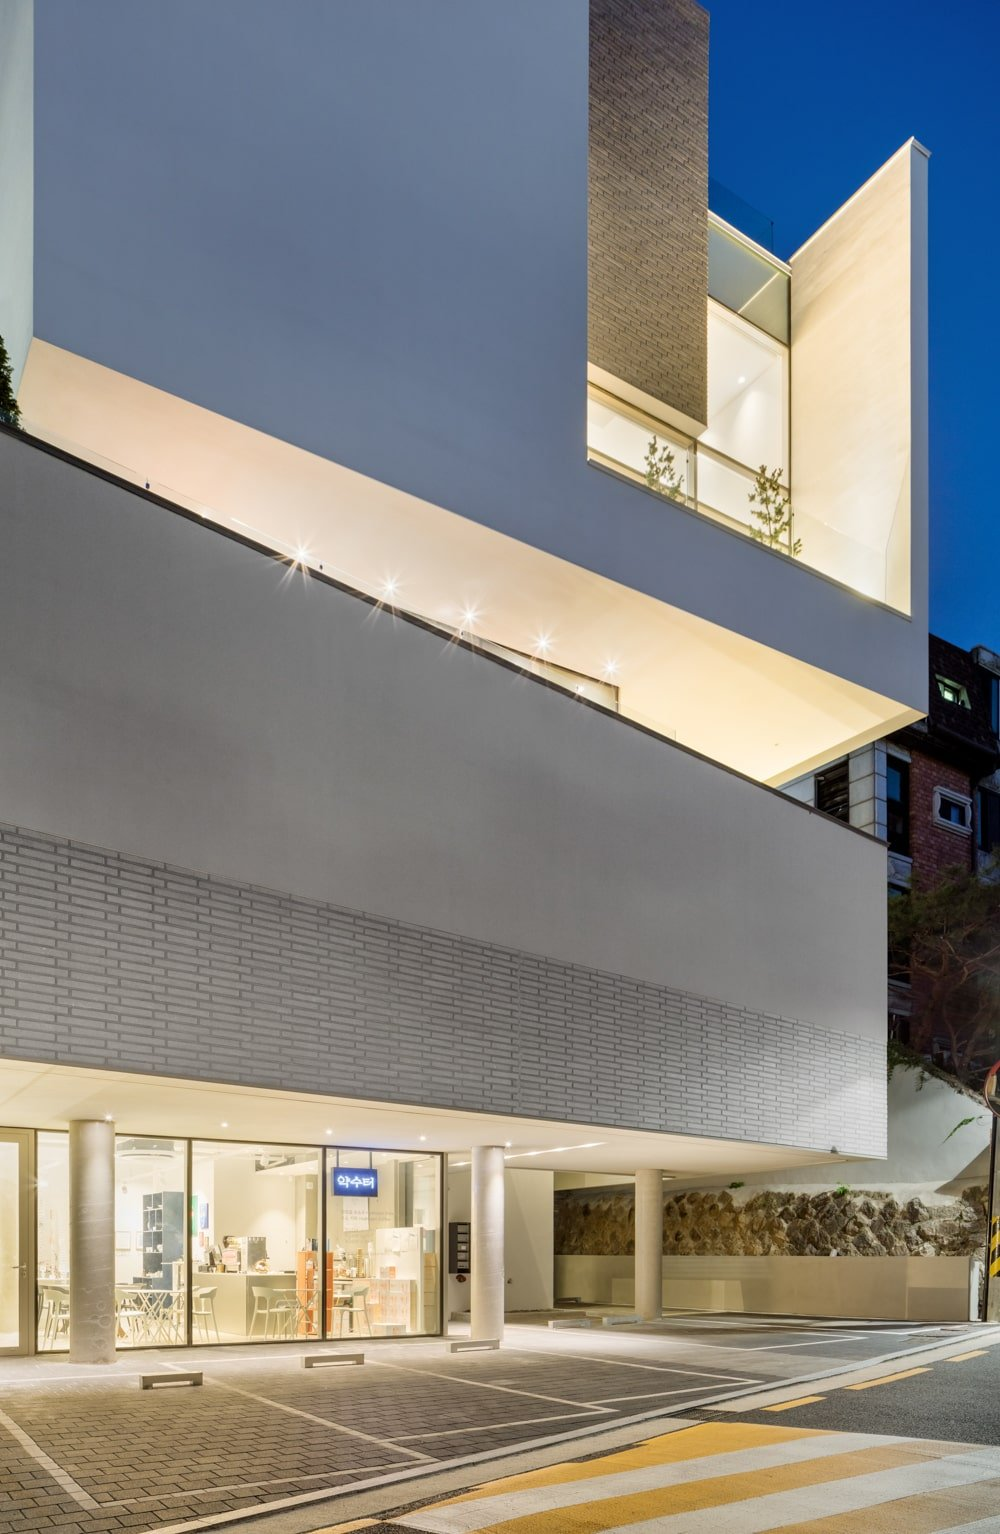 This is a close look at the side of the building showcasing the warm glow of the glass walls and balconies supported by the concrete structures.